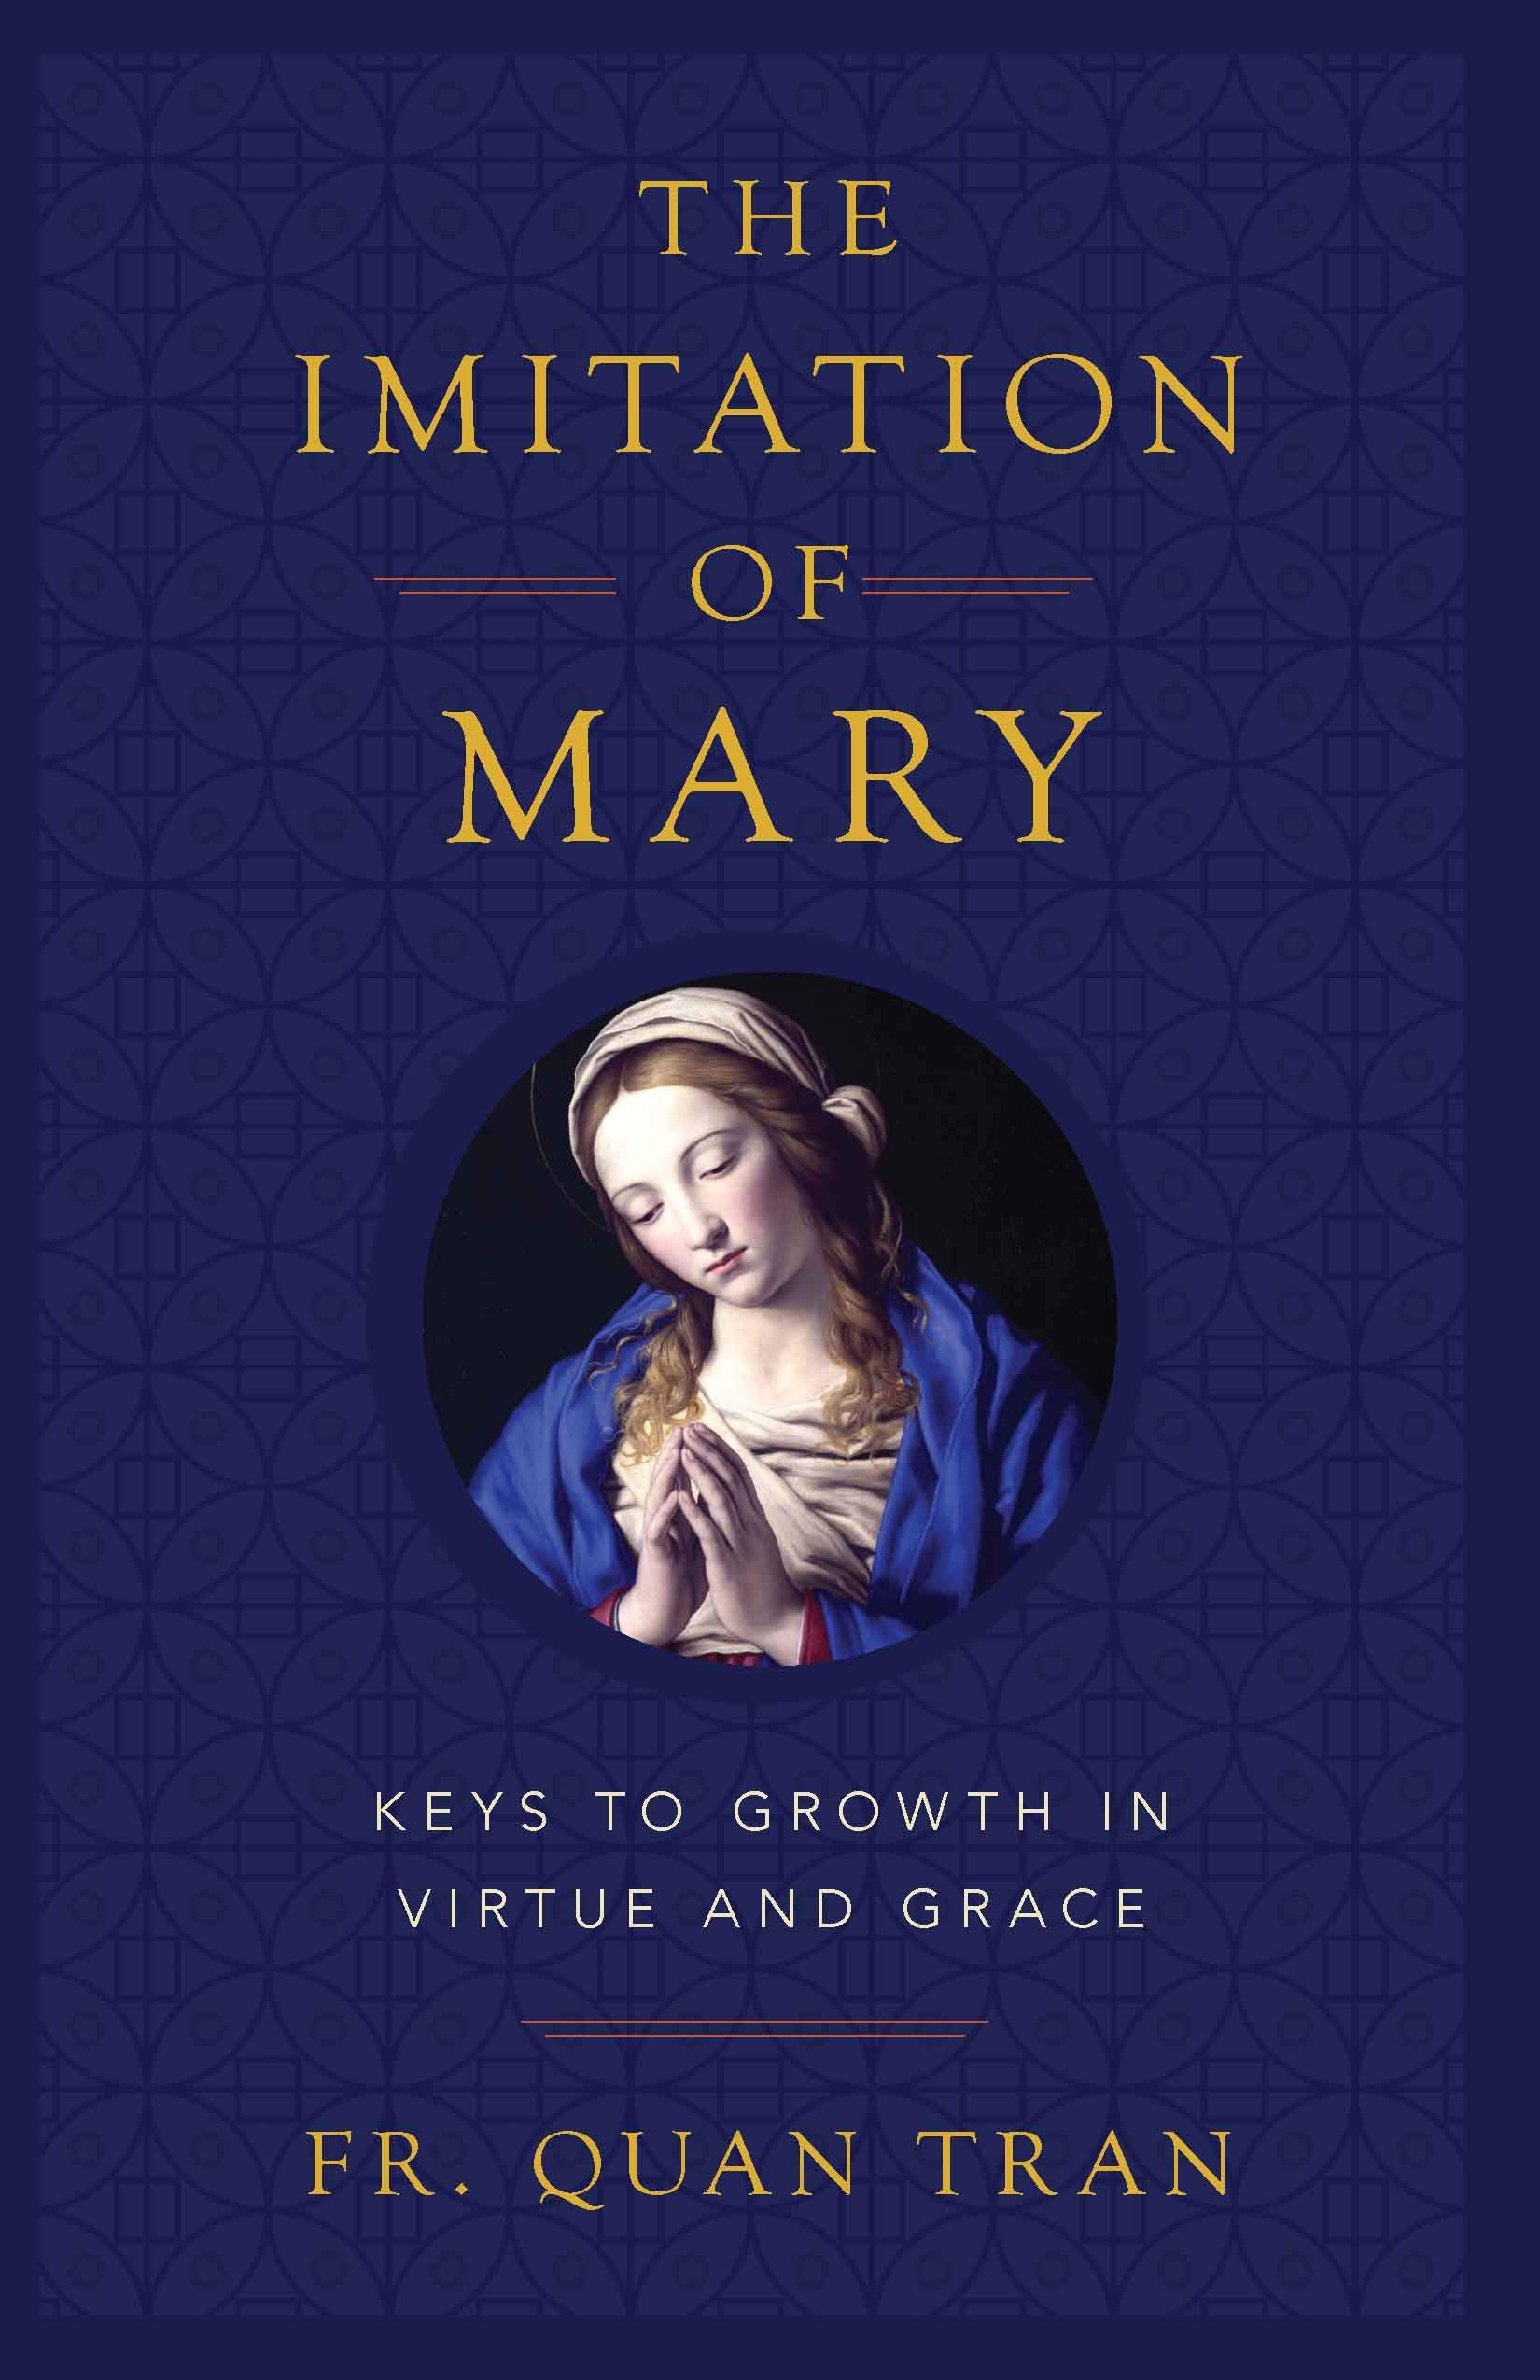 The Imitation of Mary: Keys to Growth in Virtue and Grace